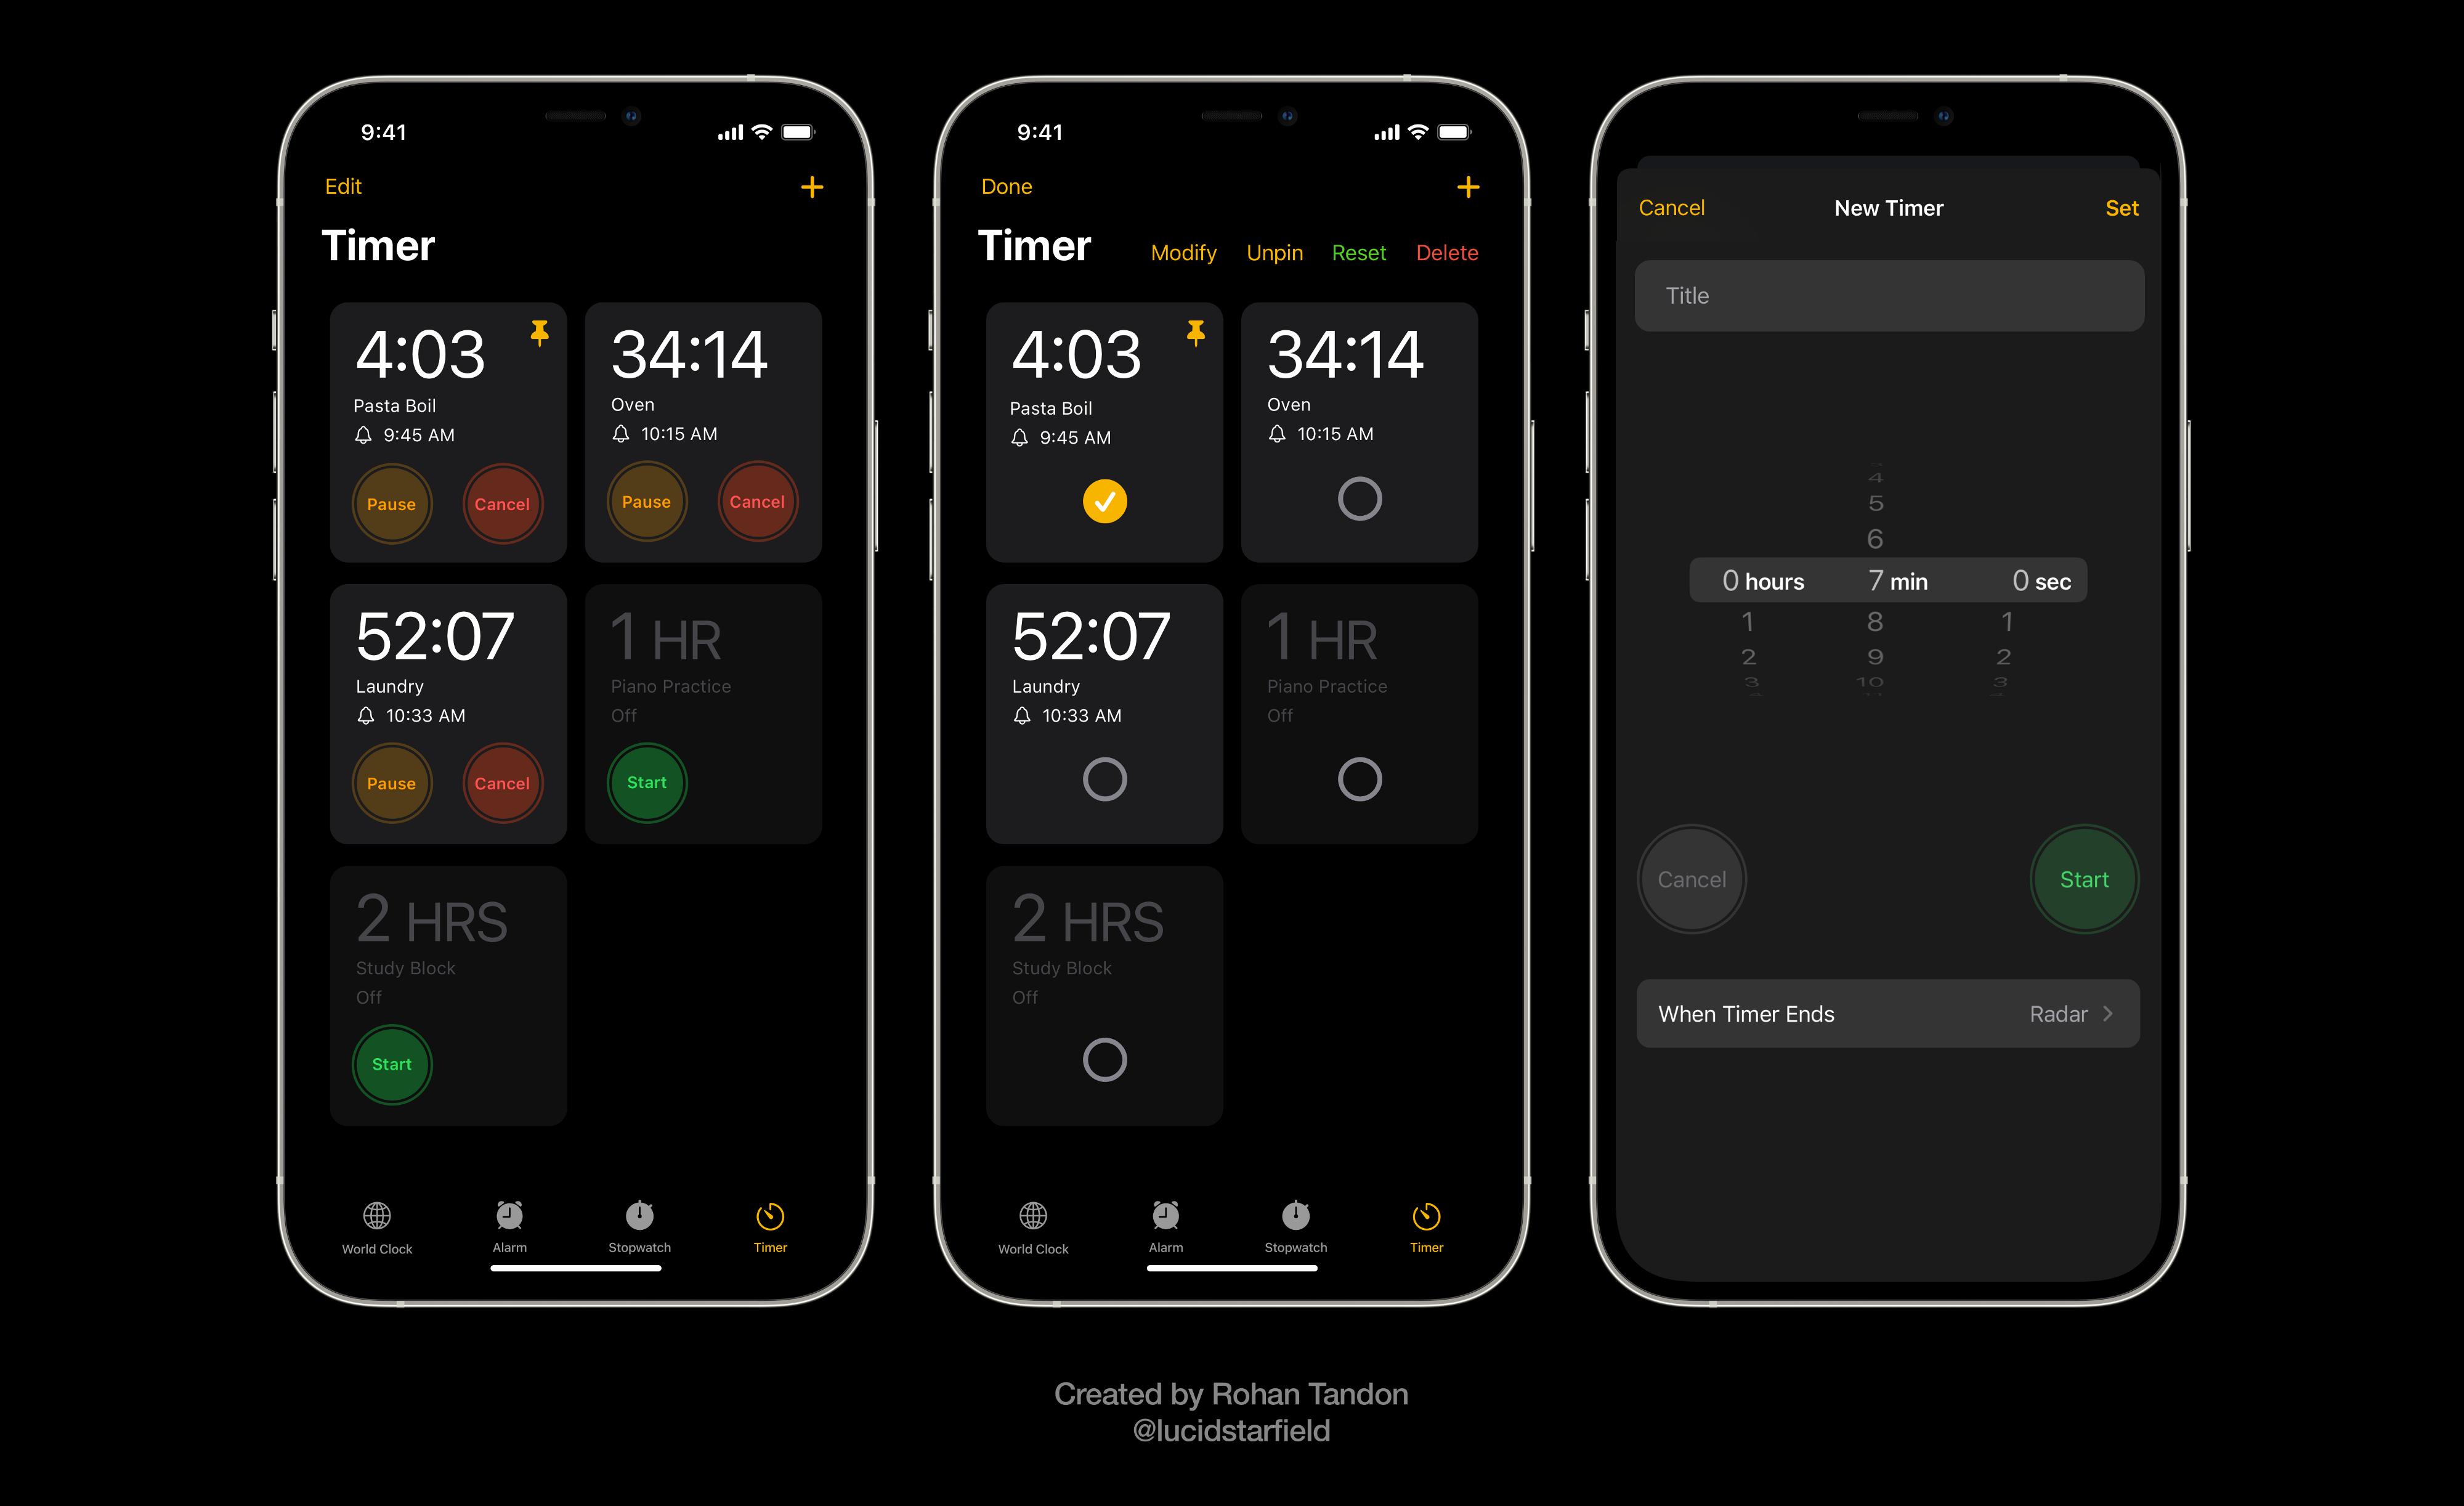 iOS 15 Aurora conceptualizes the ability to set more than one timer, pin, reset, and rename them.